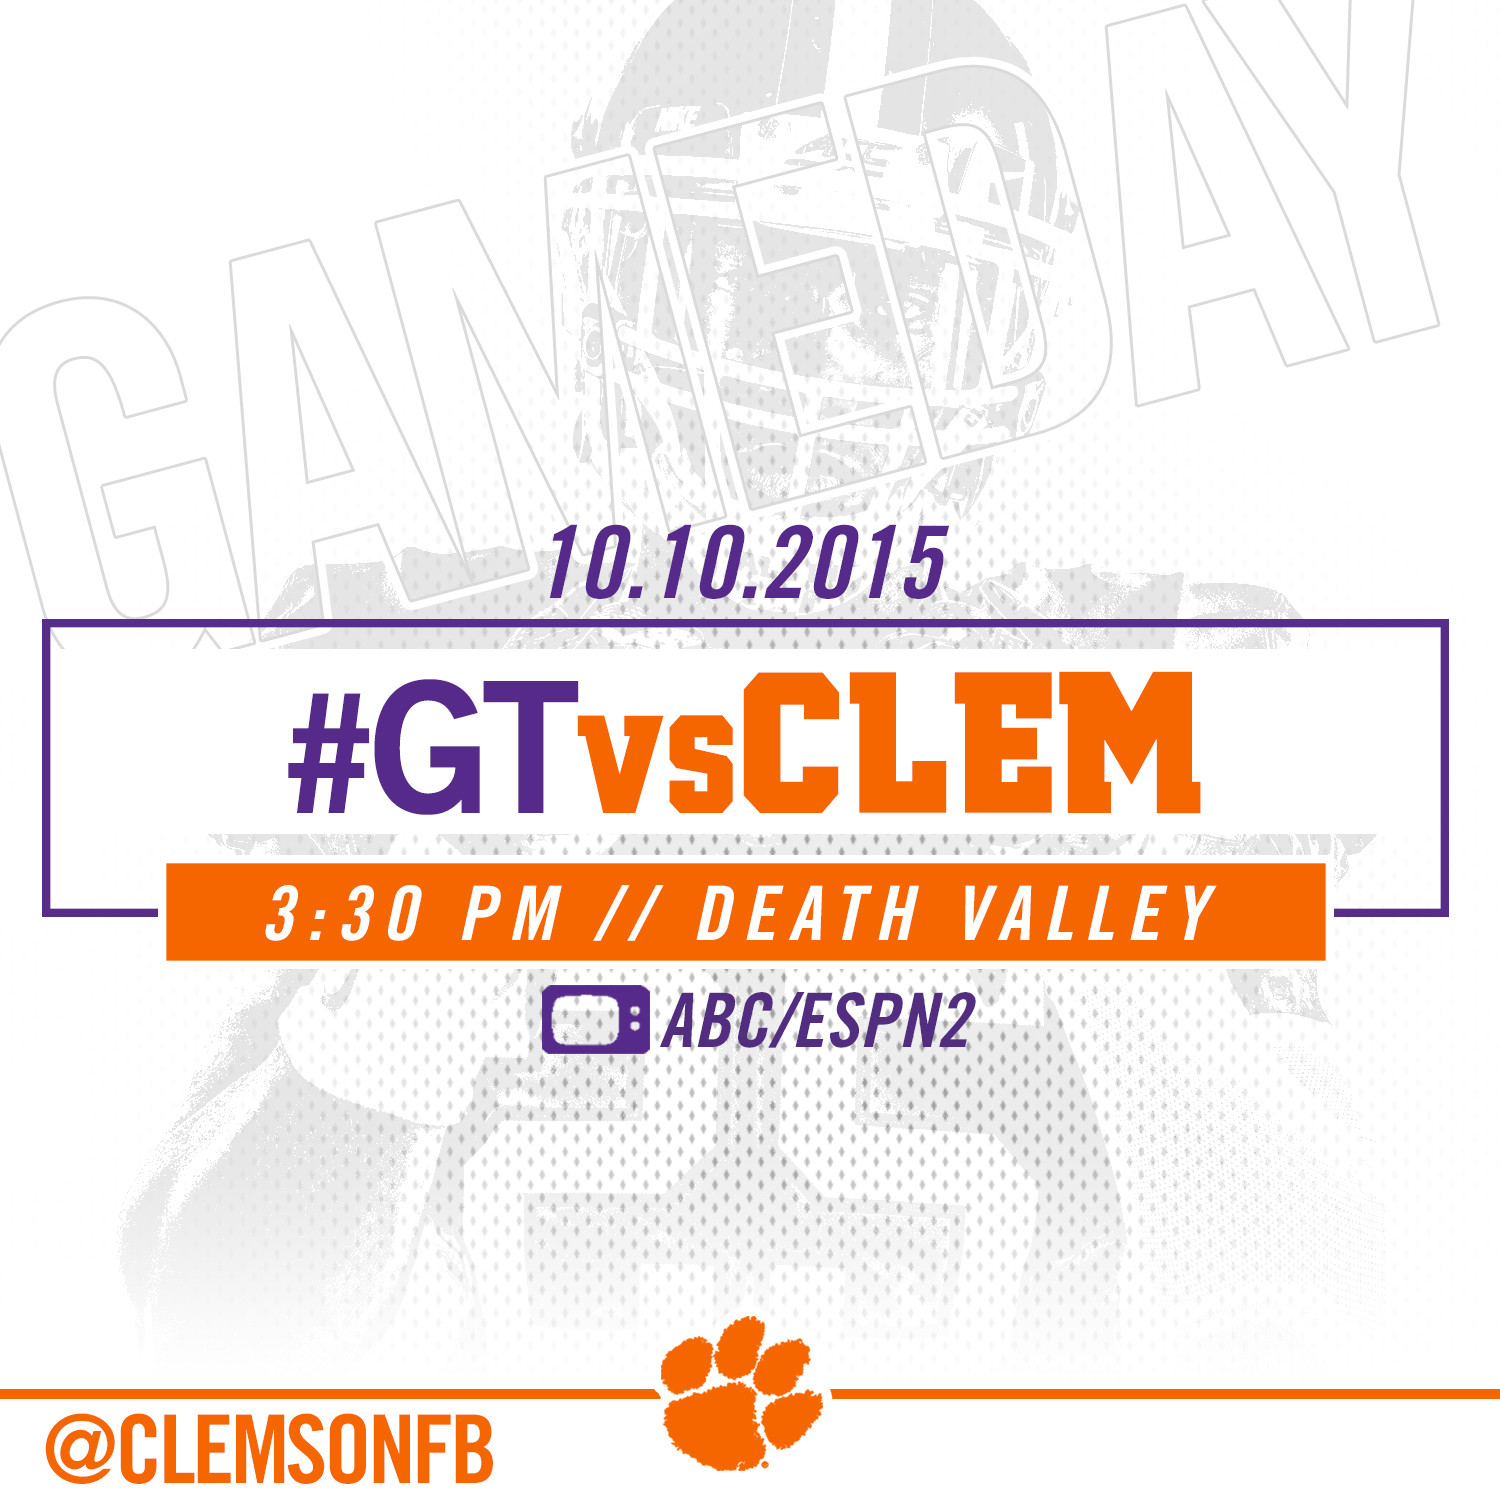 #GTvsCLEM Gameday Guide